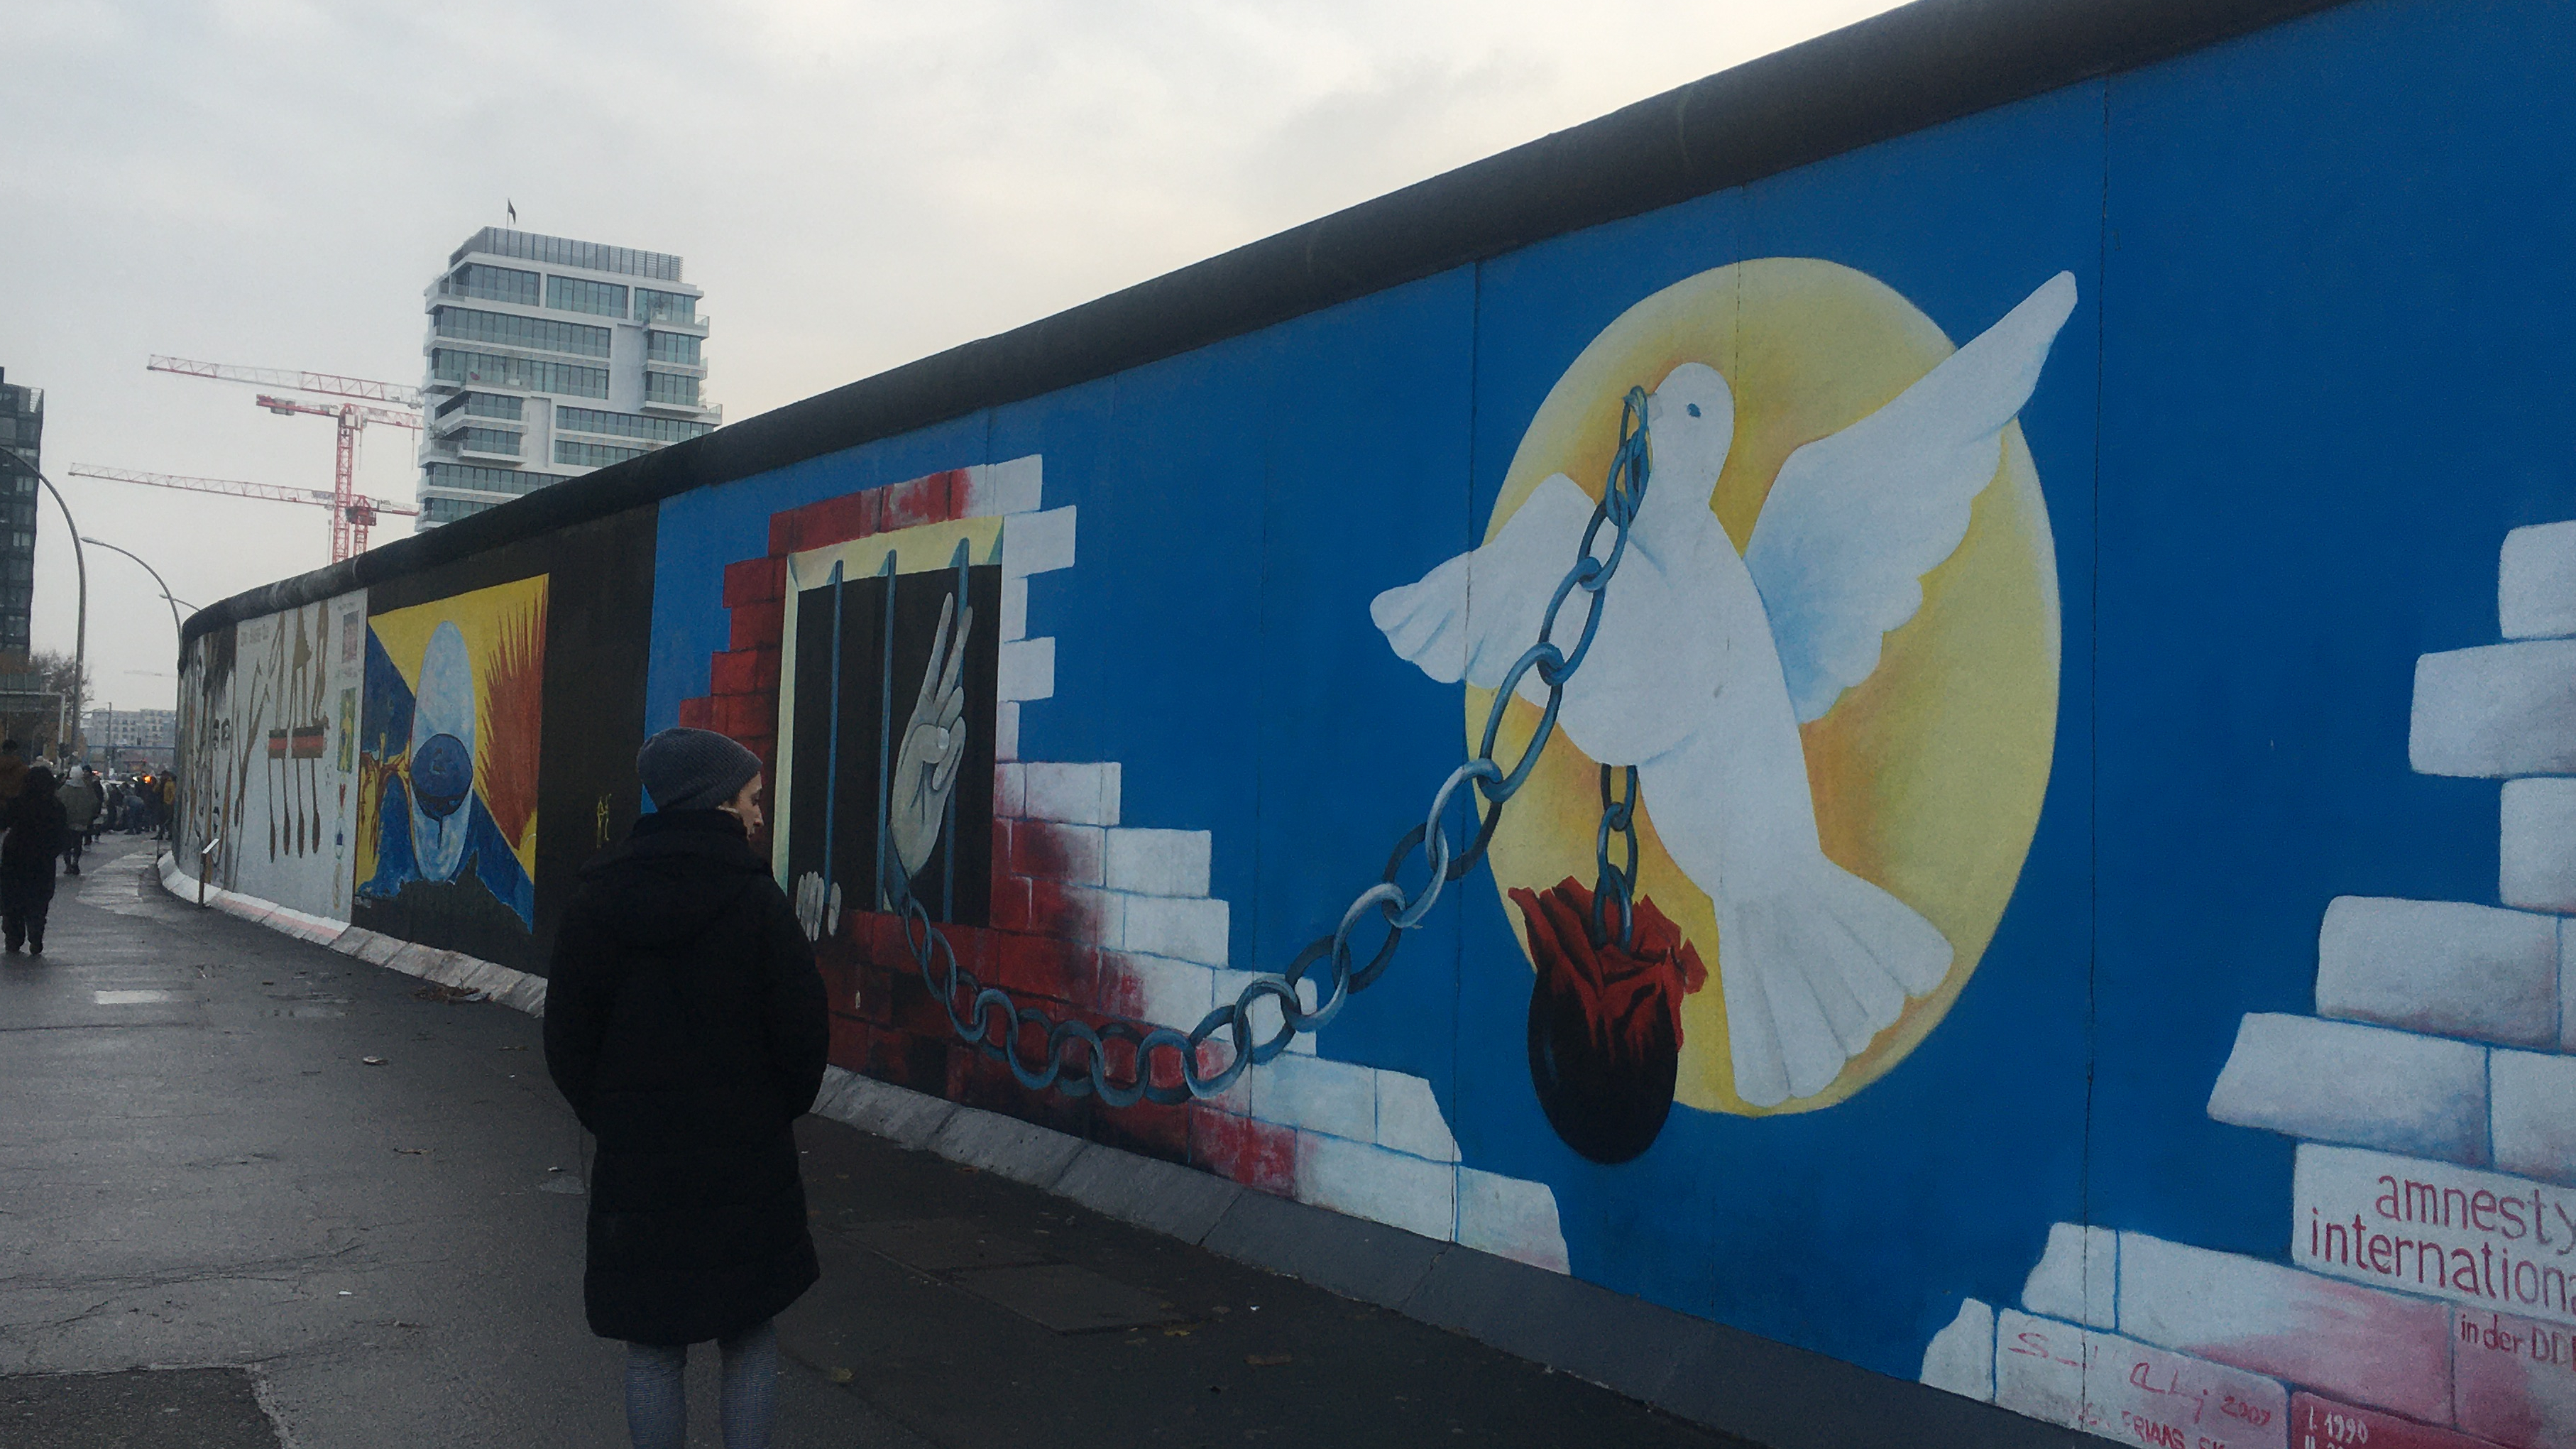 A mural of a white bird, chain and rose painted on the Berlin wall and a person walking by it